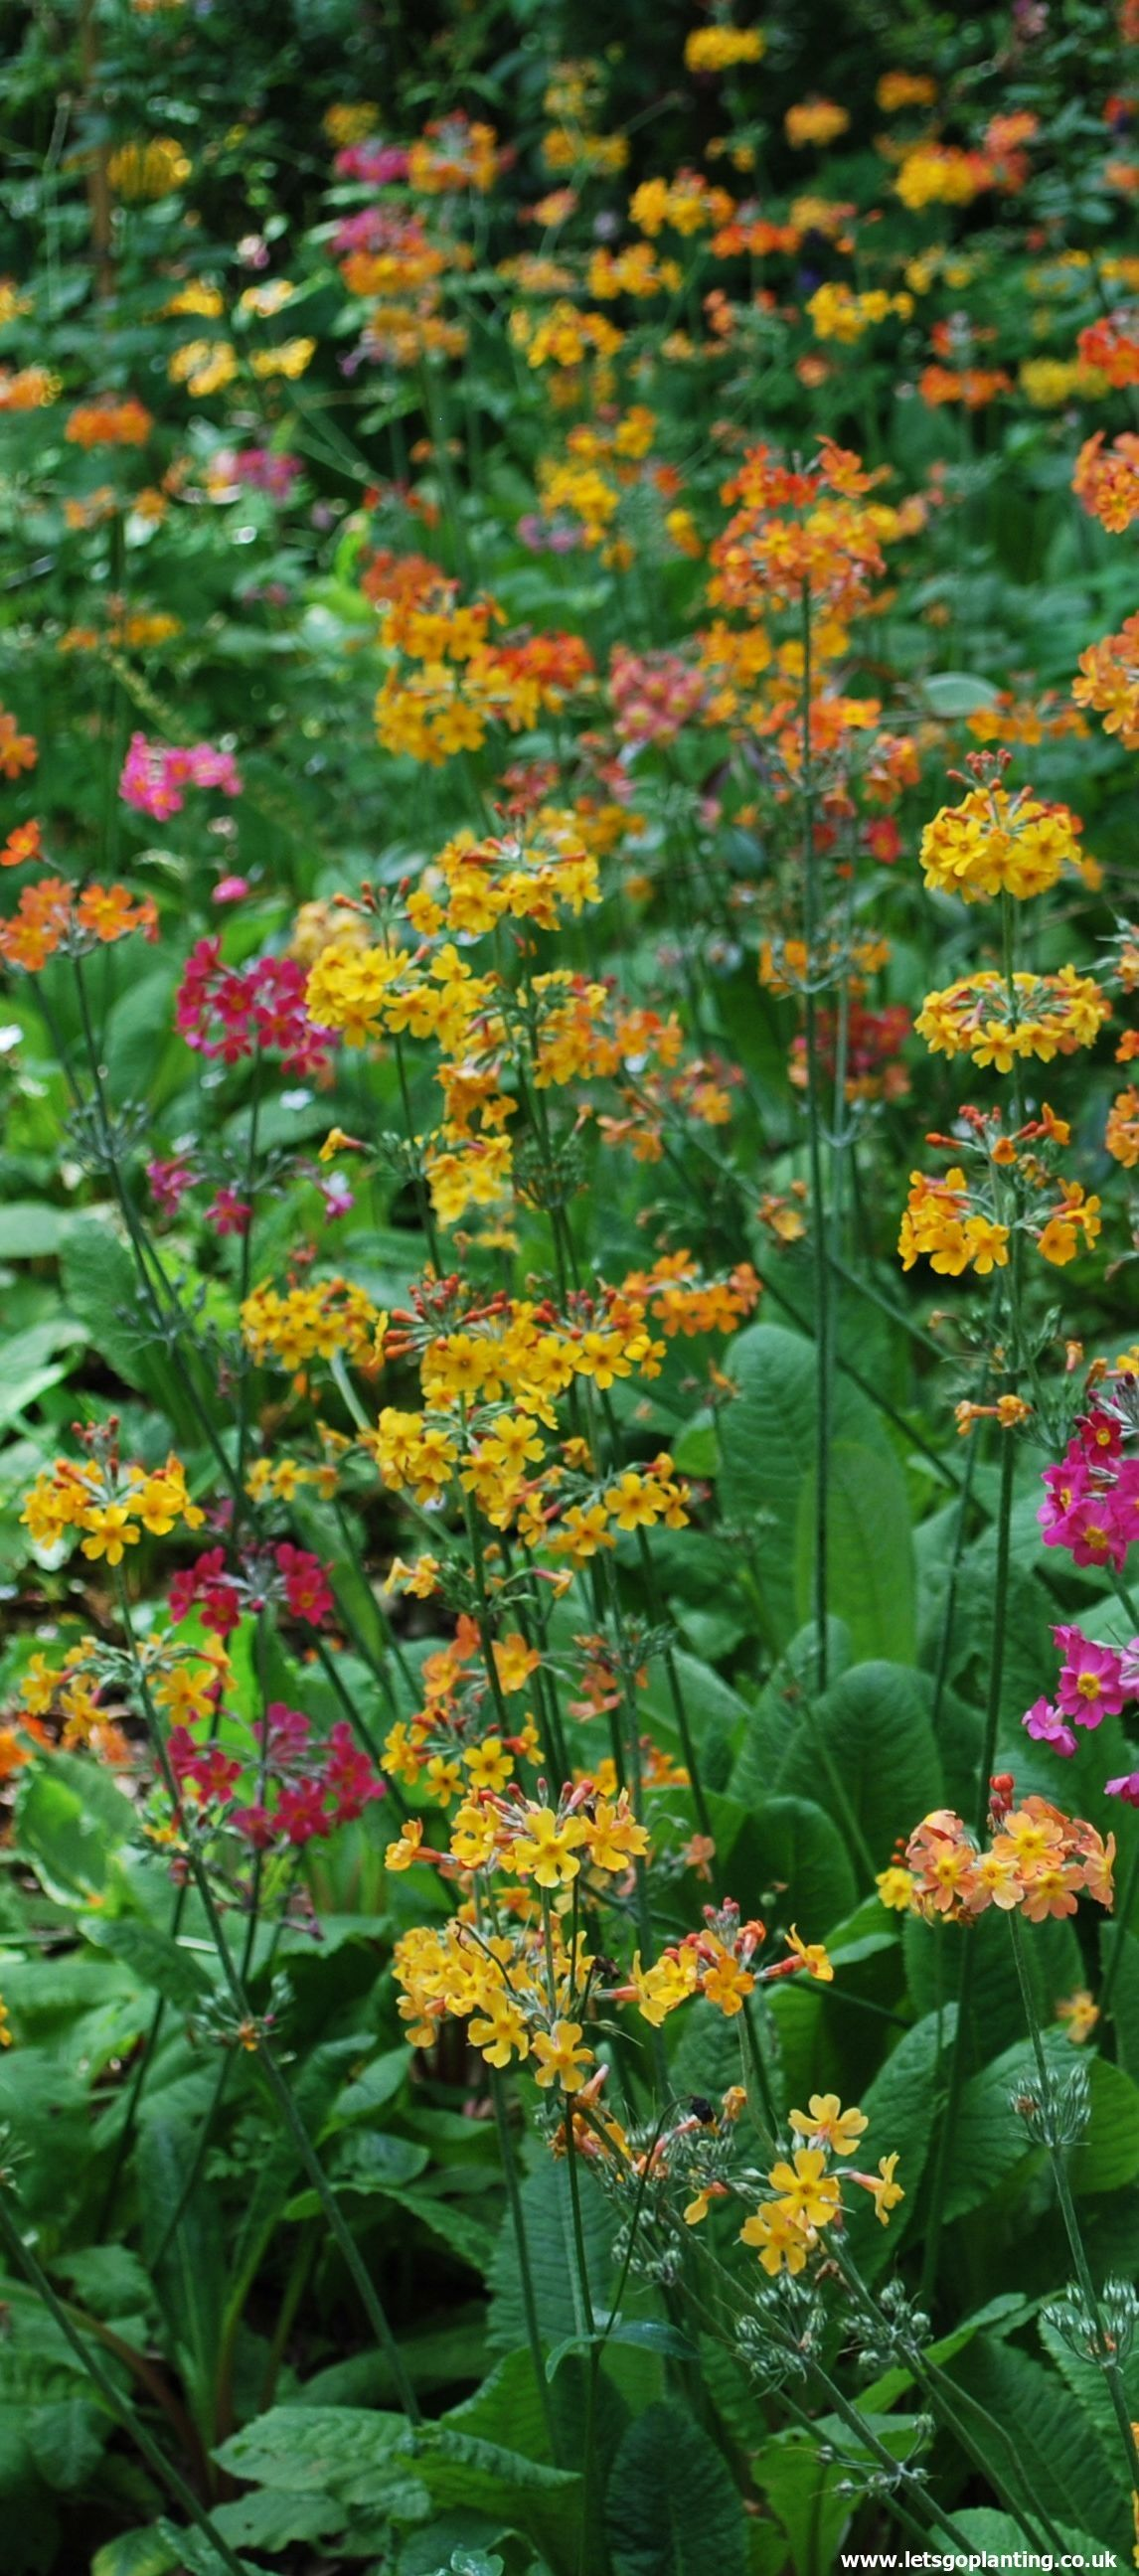 Primula Bulleyana Commonly Known As Bulleys Primrose Is A Compact